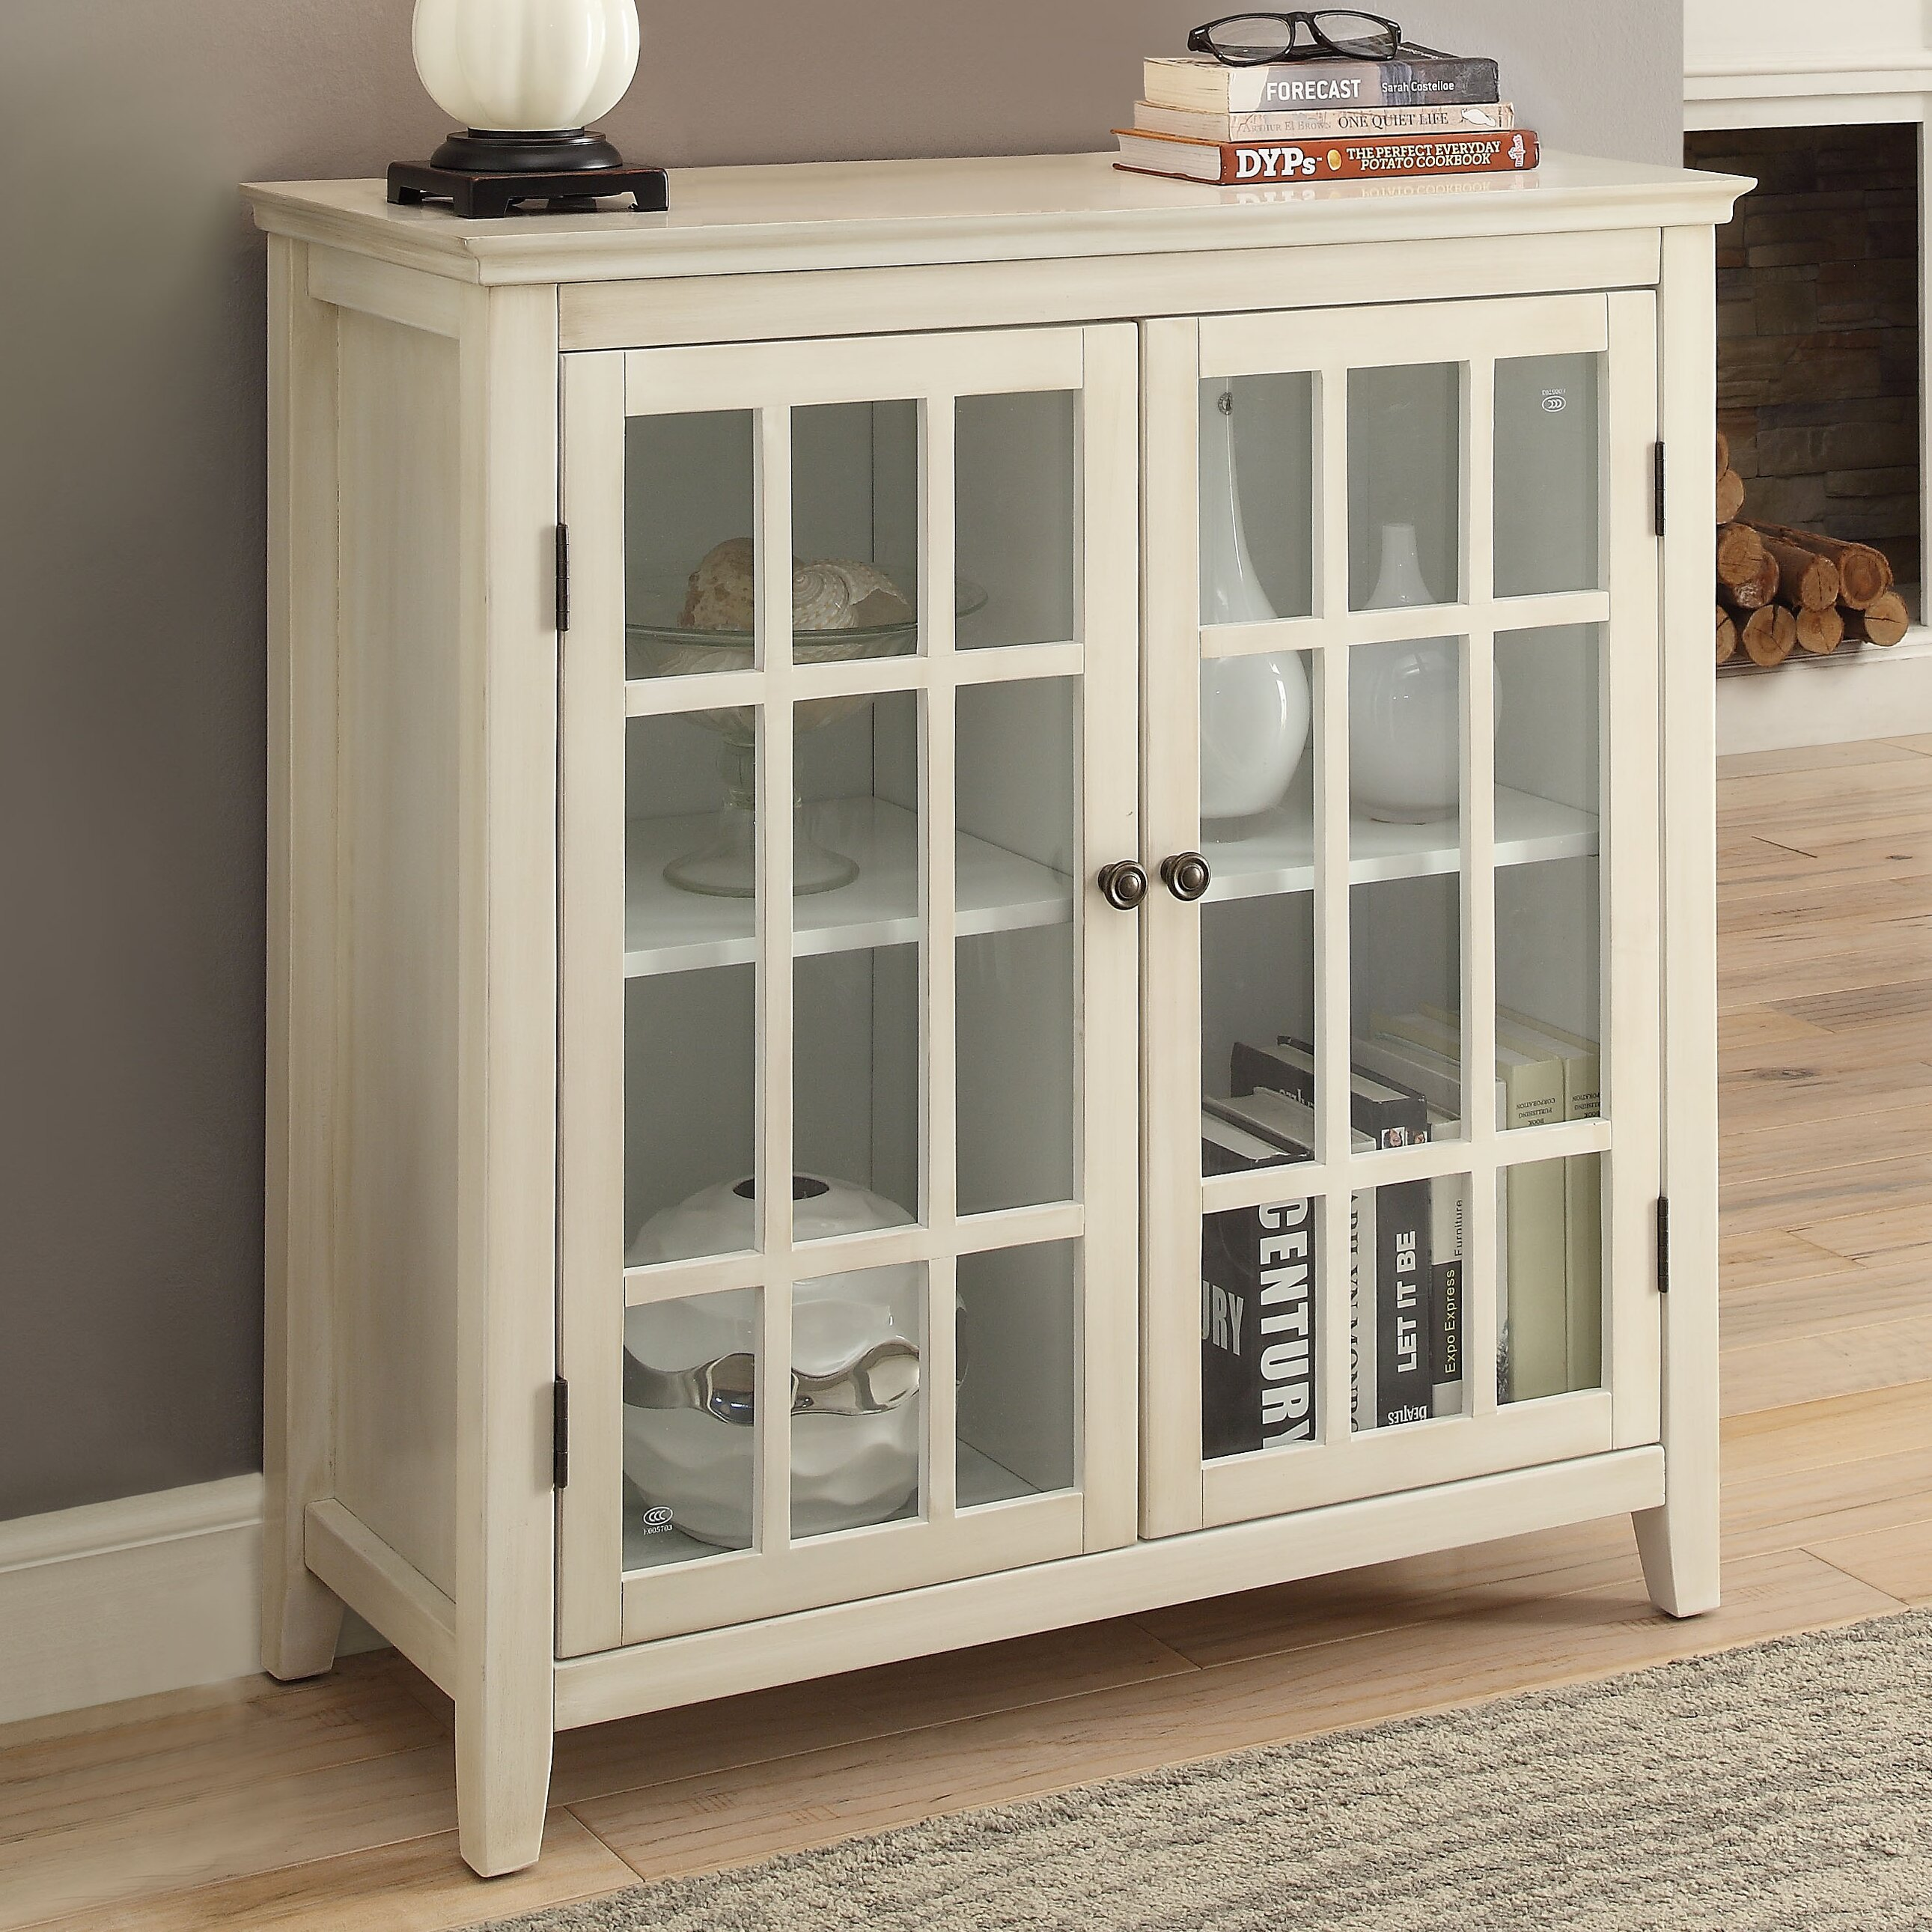 Beachcrest home naples park antique double door cabinet for One day doors and closets reviews